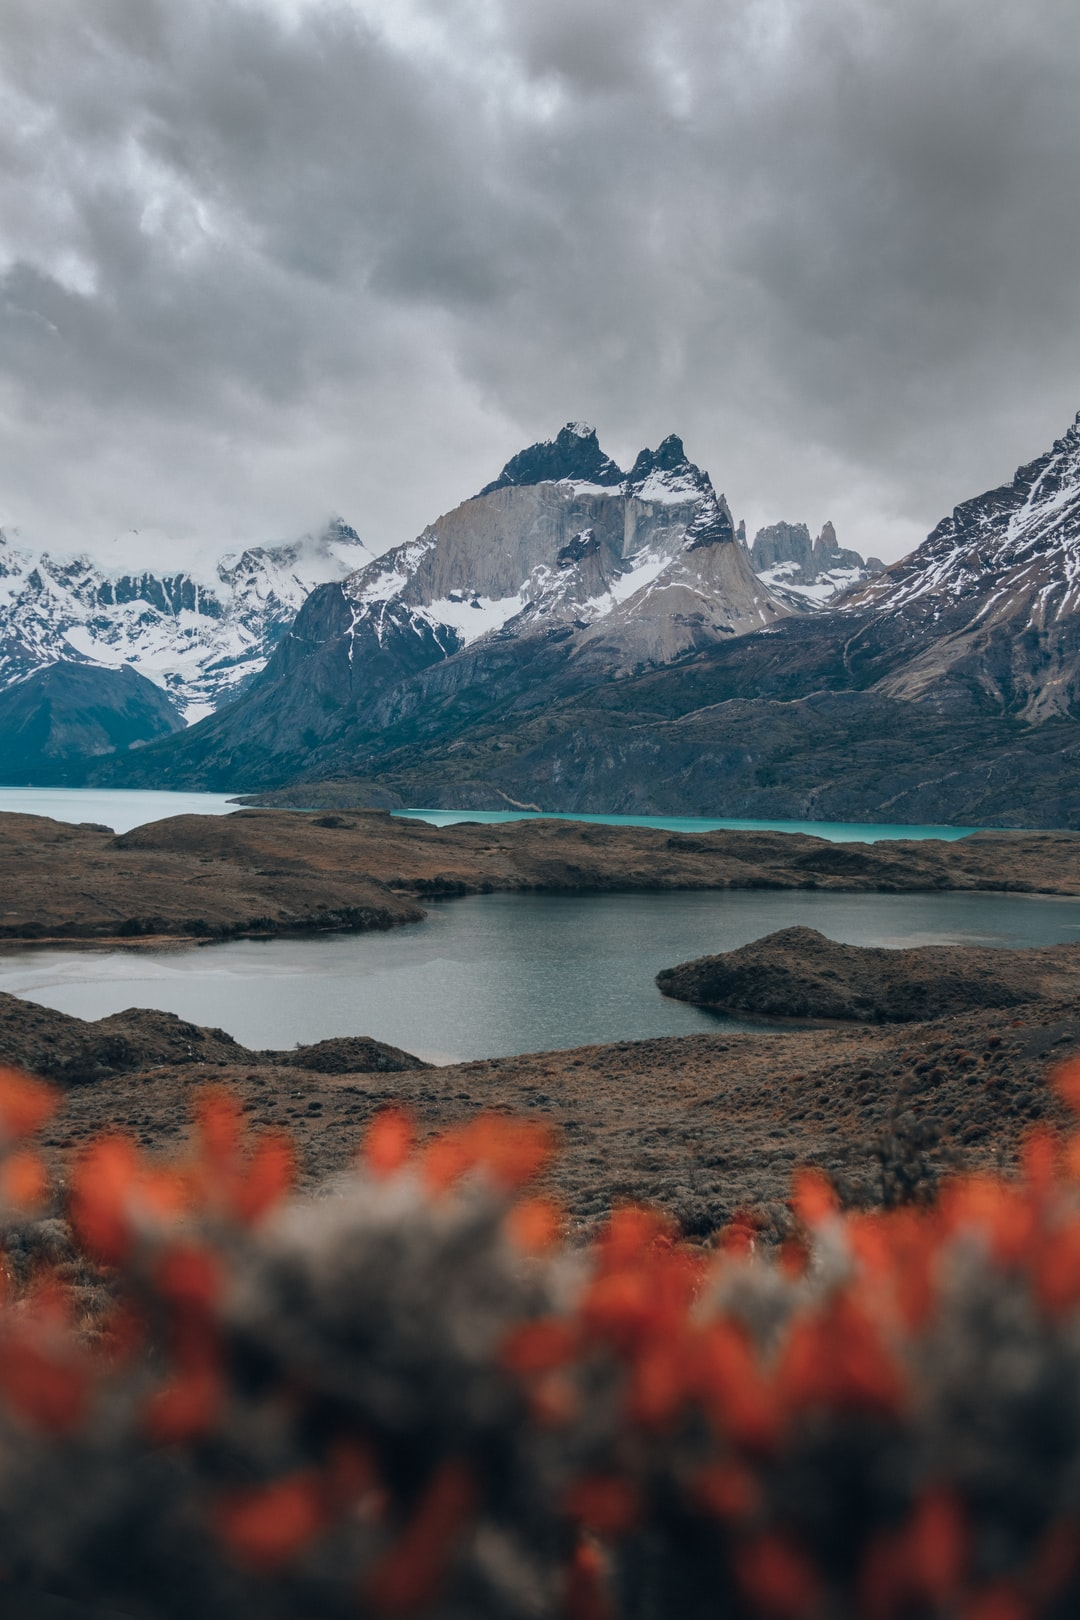 A different view of Torres del Paine, you can see the differents colors of lakes and mountains, Patagonia